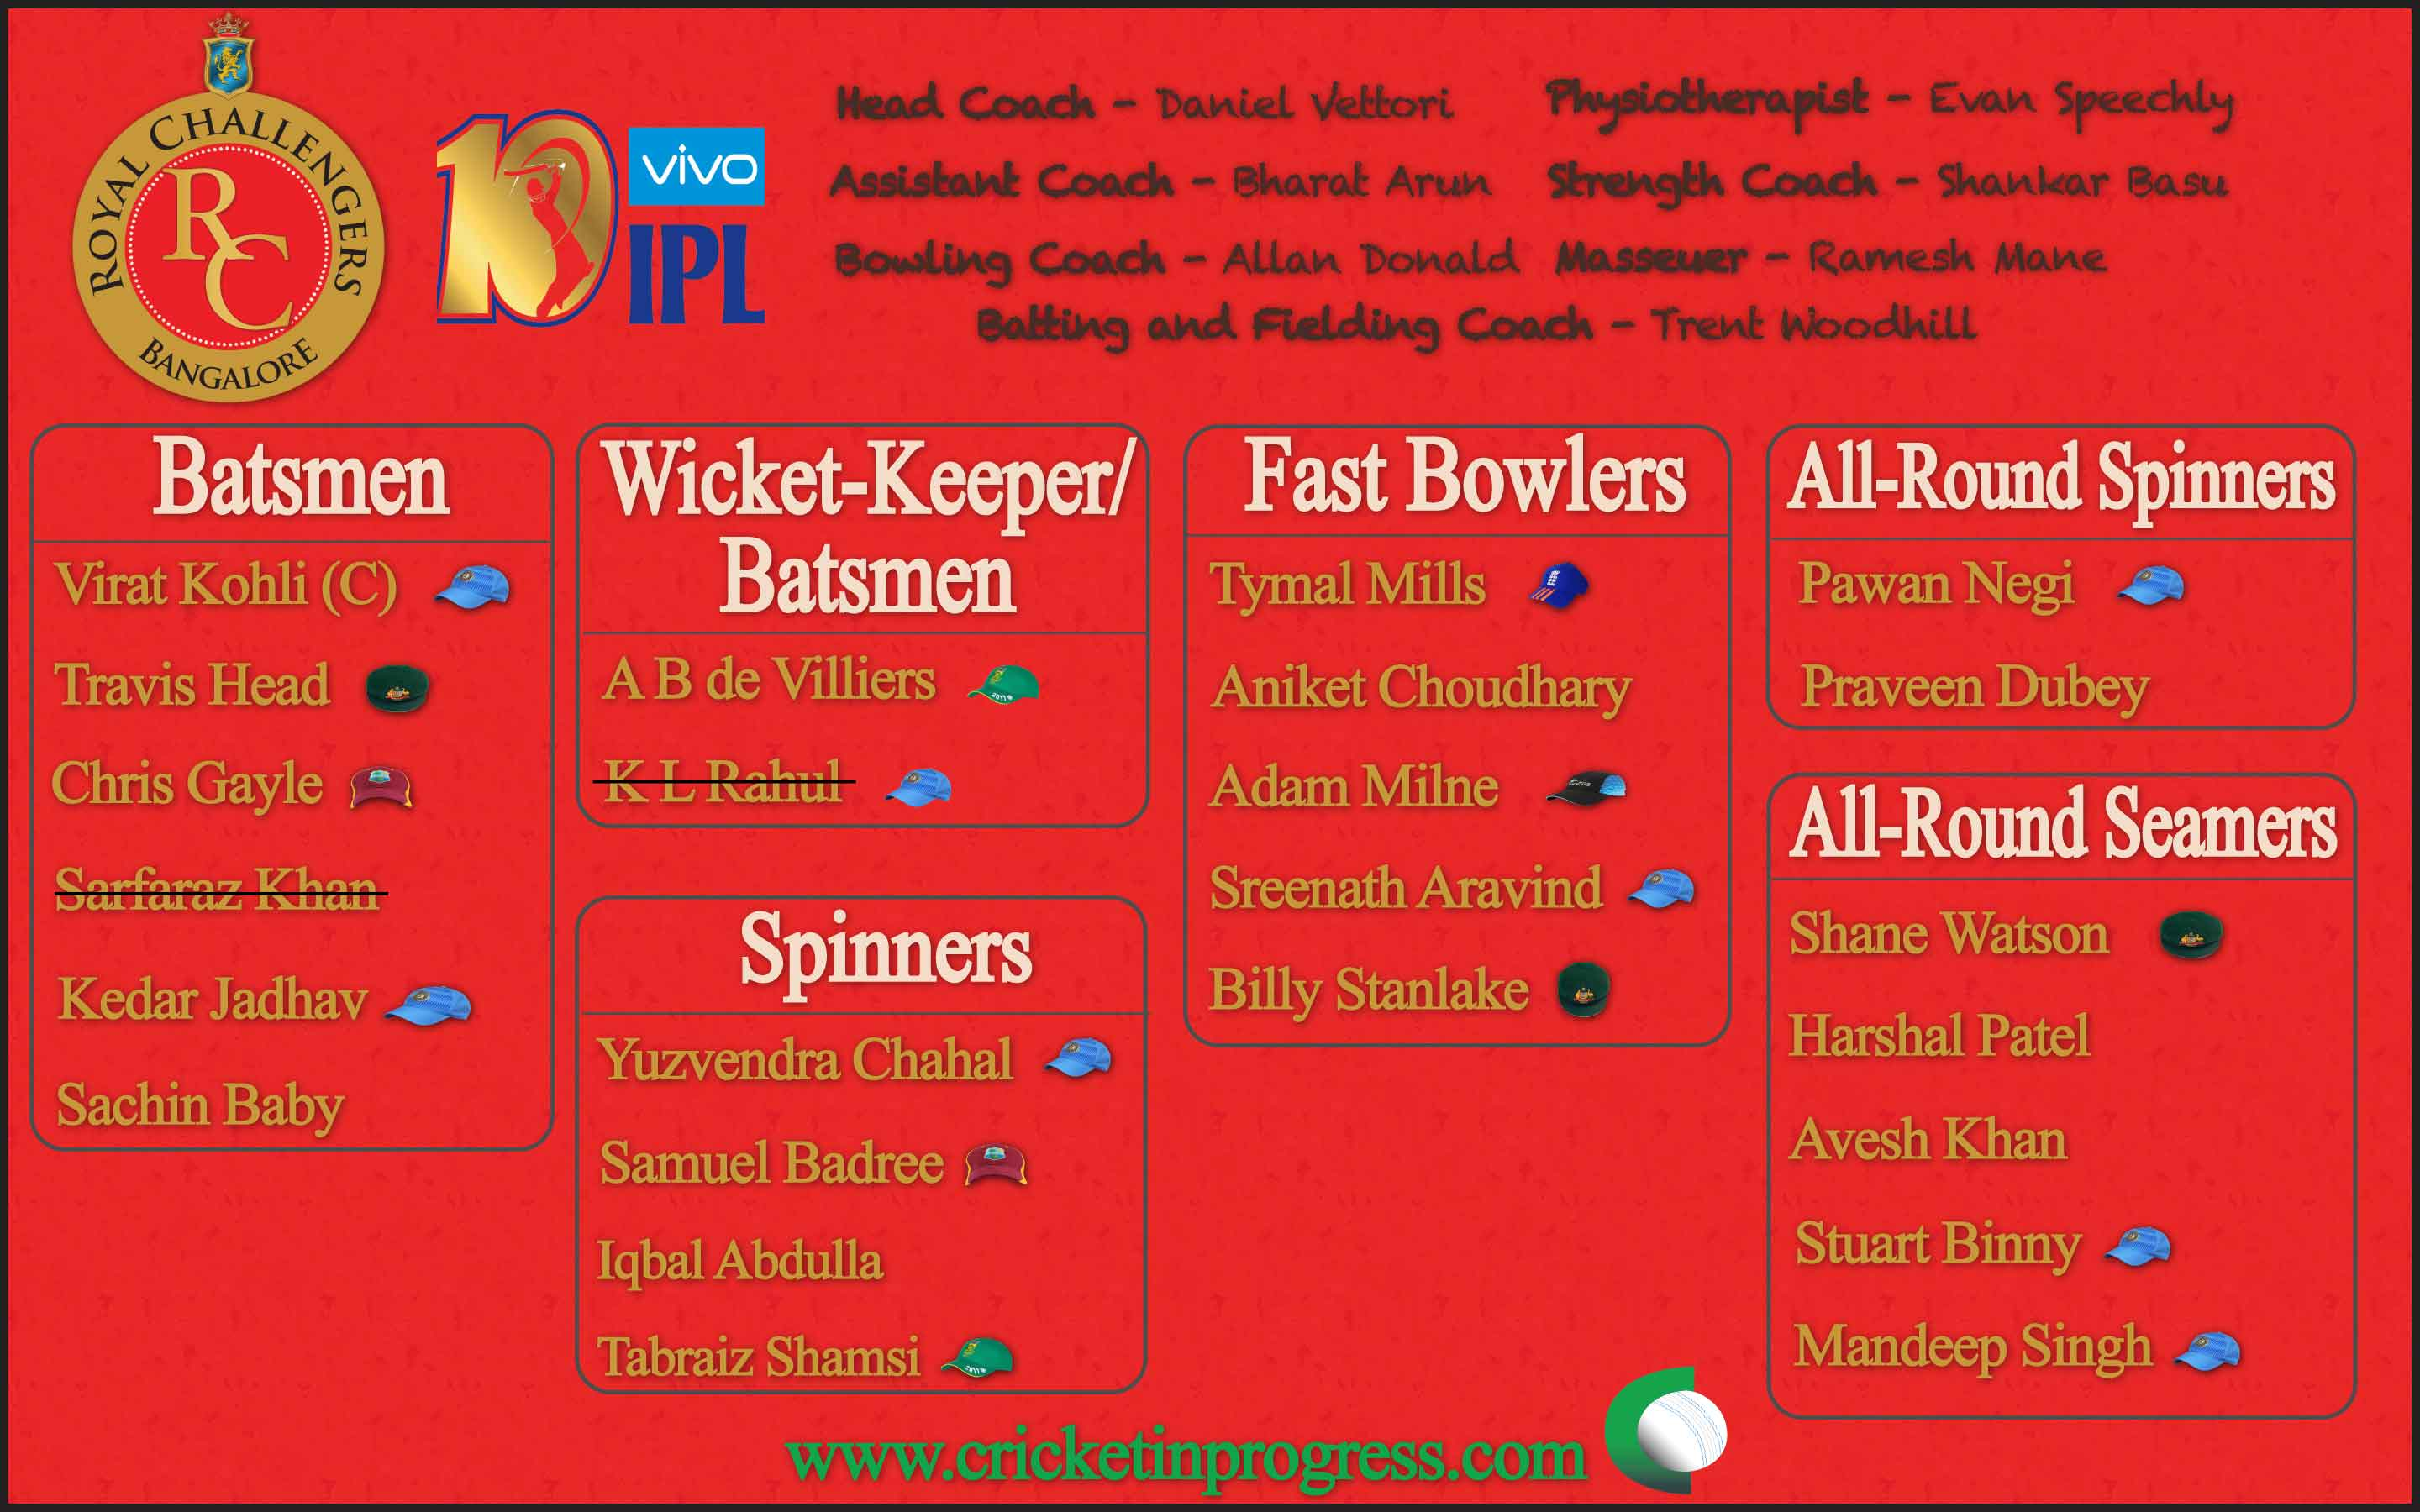 Royal Challengers Bangalore Roster